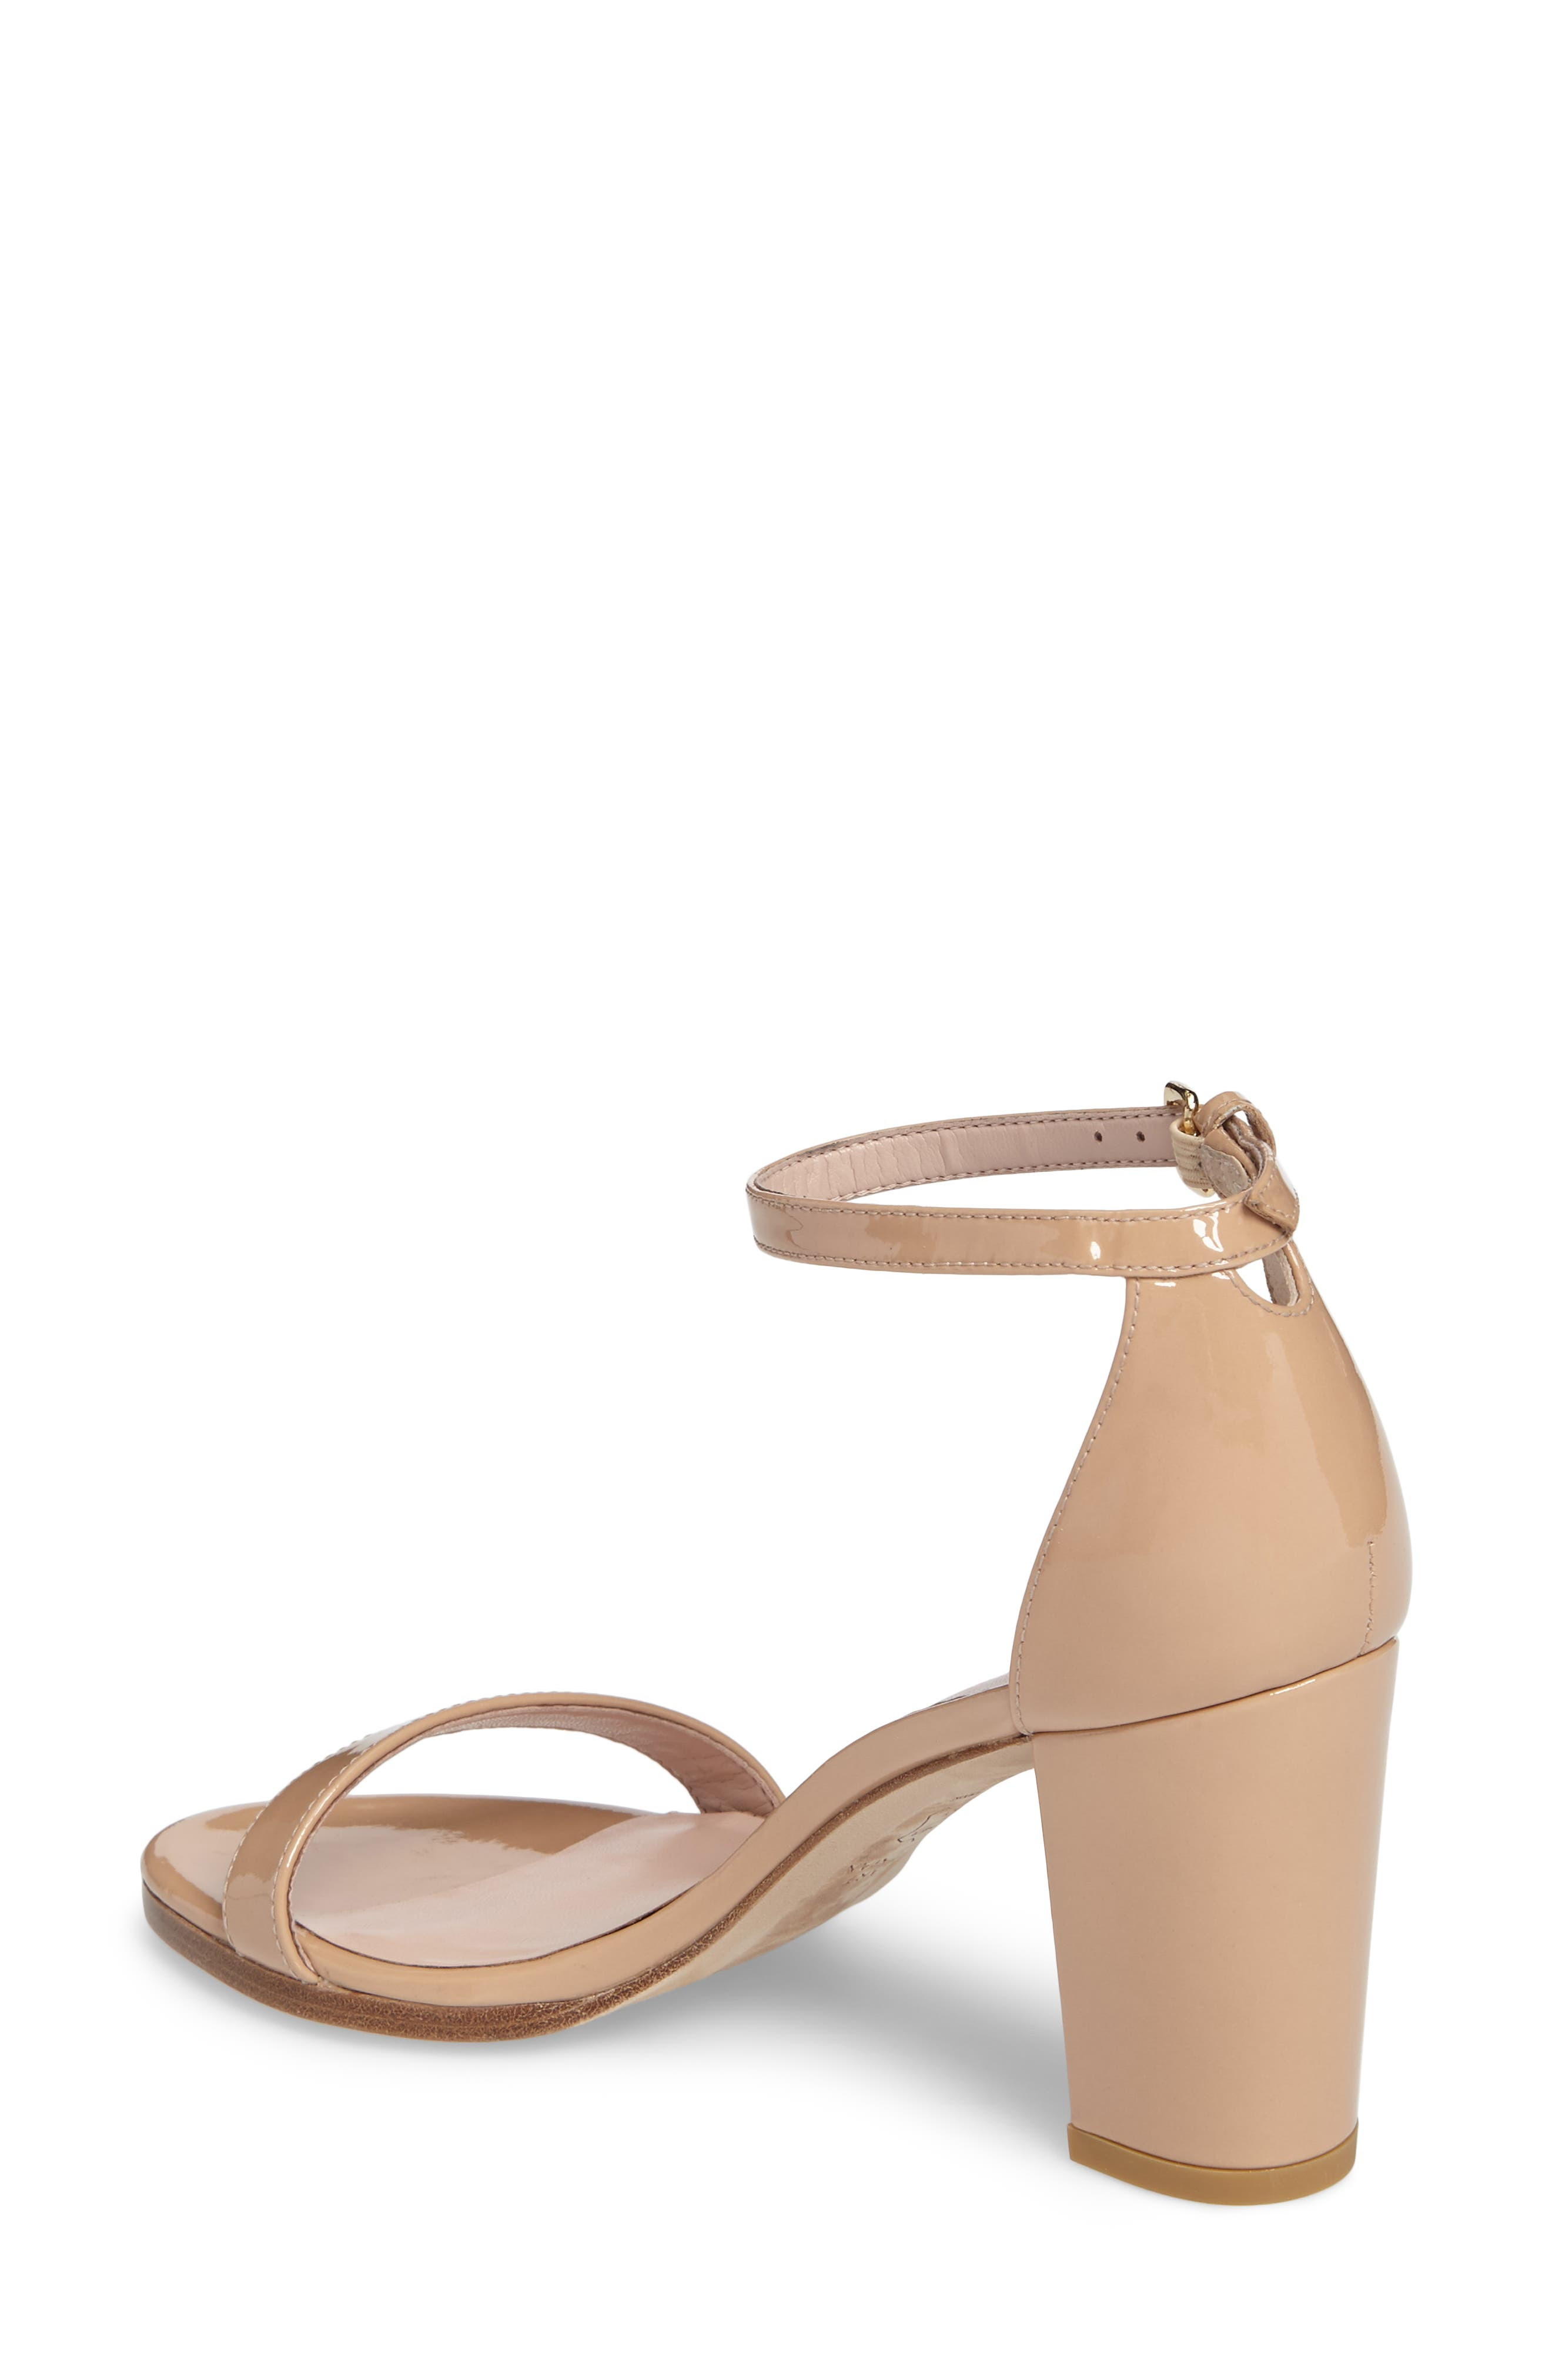 NearlyNude Ankle Strap Sandal,                             Alternate thumbnail 2, color,                             ADOBE ANILINE